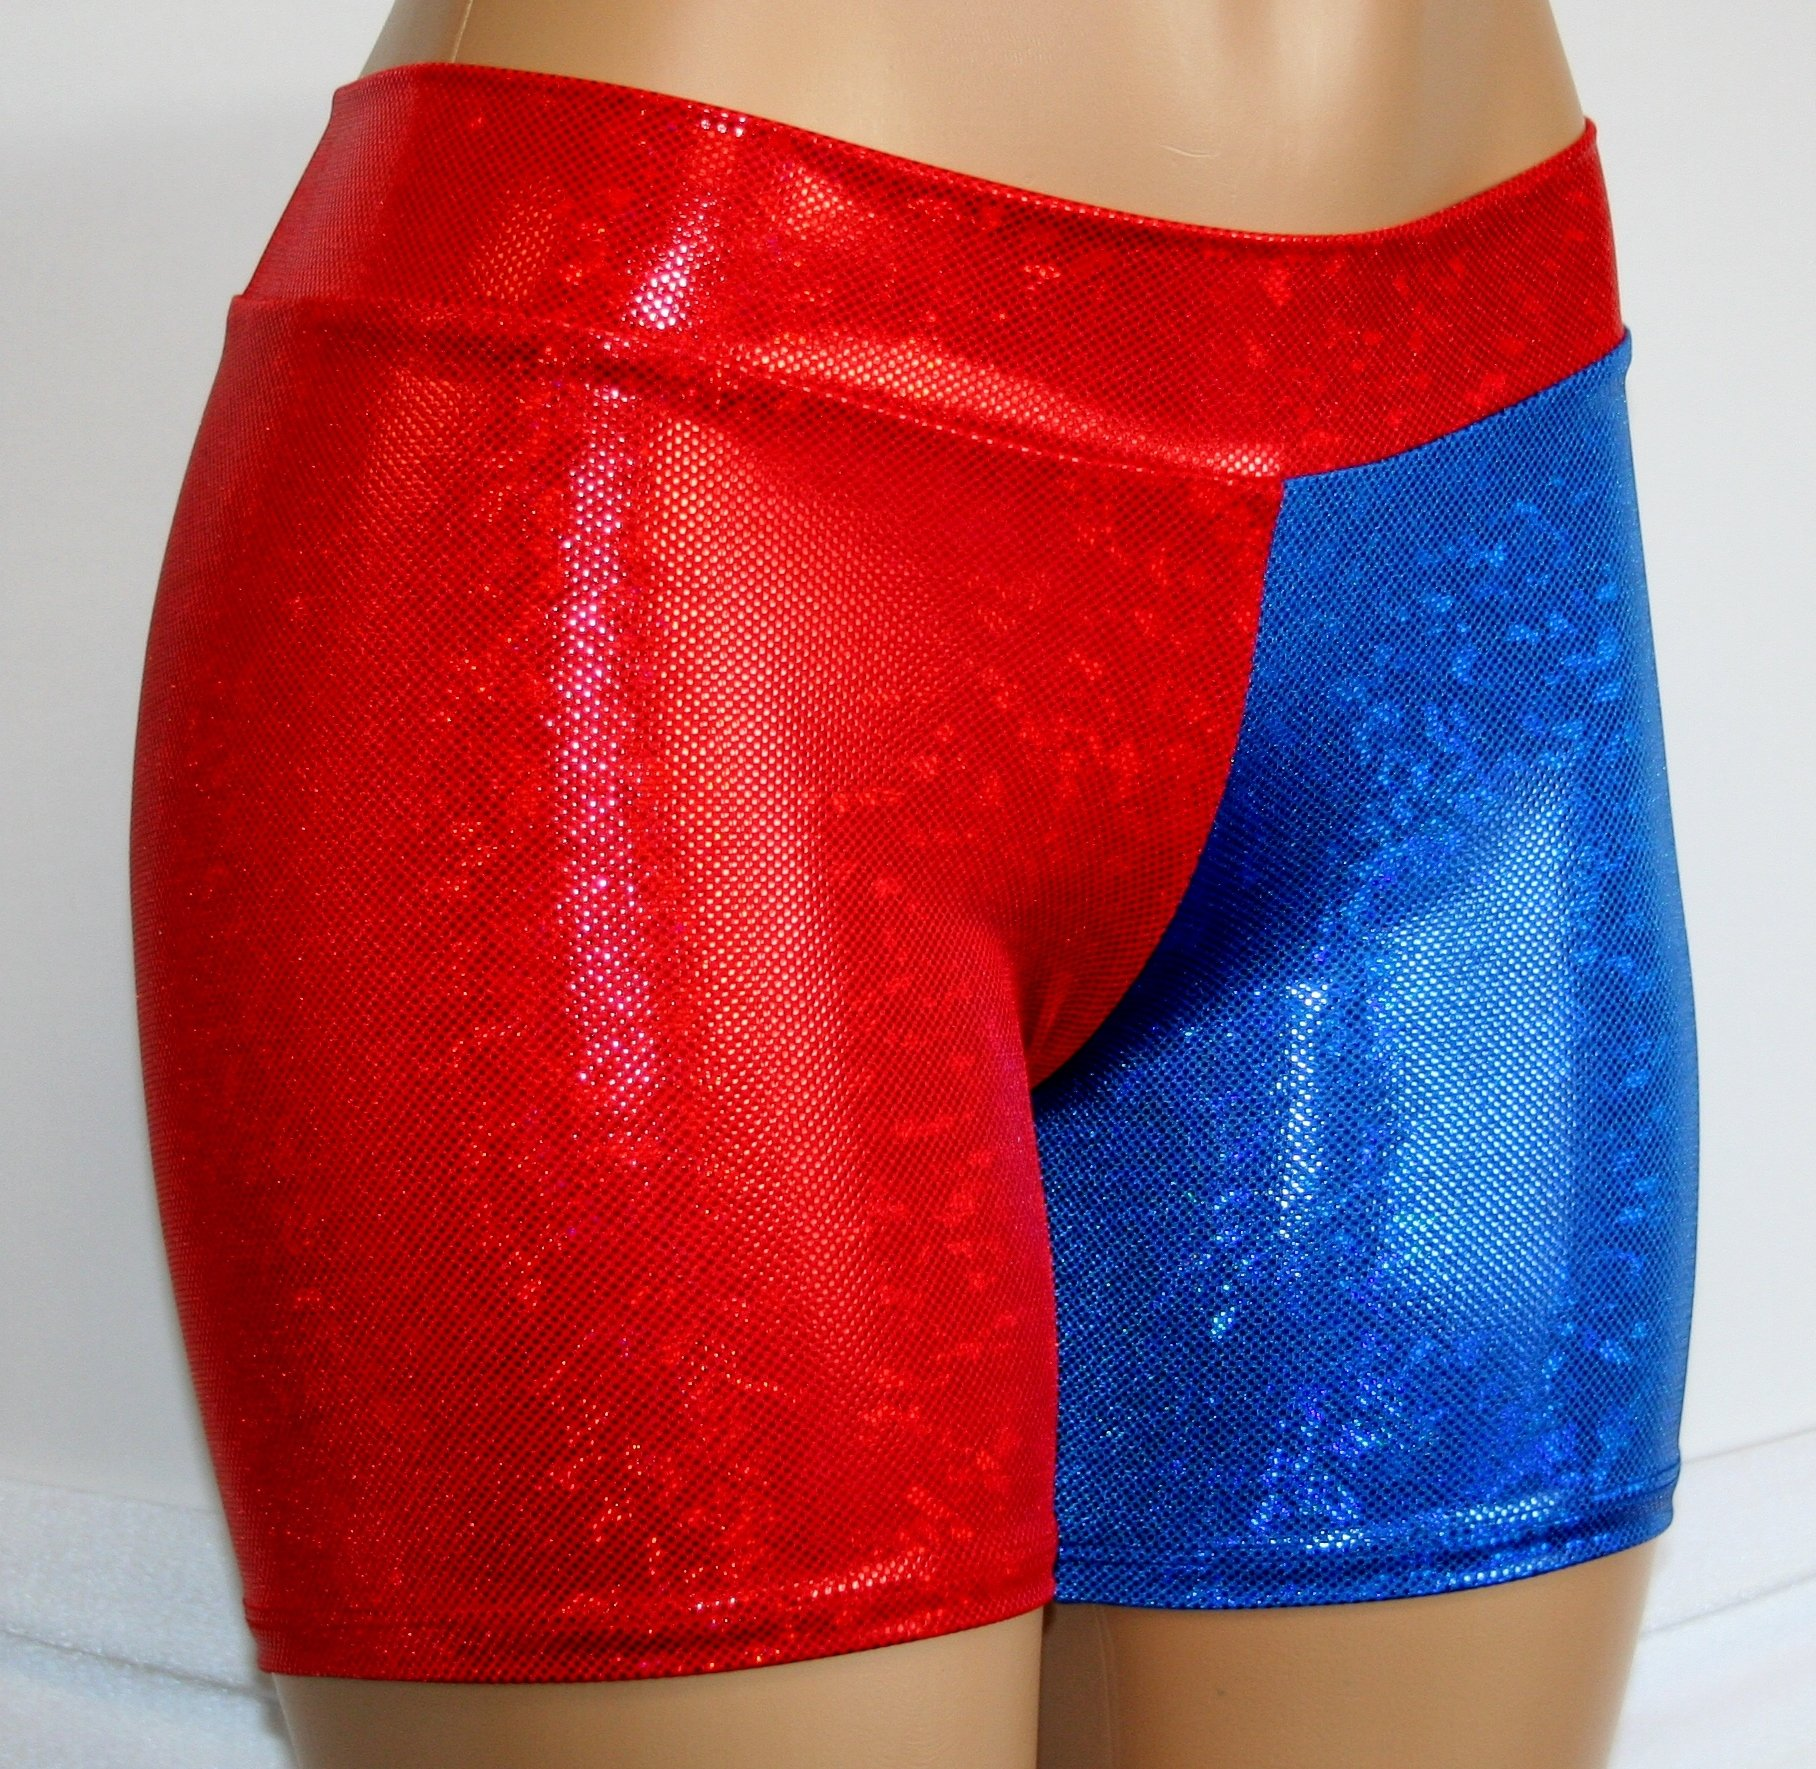 Dilly Duds Children's Red and Blue Holographic Spandex Shorts (X-Small, Red Blue) by Dilly Duds (Image #2)